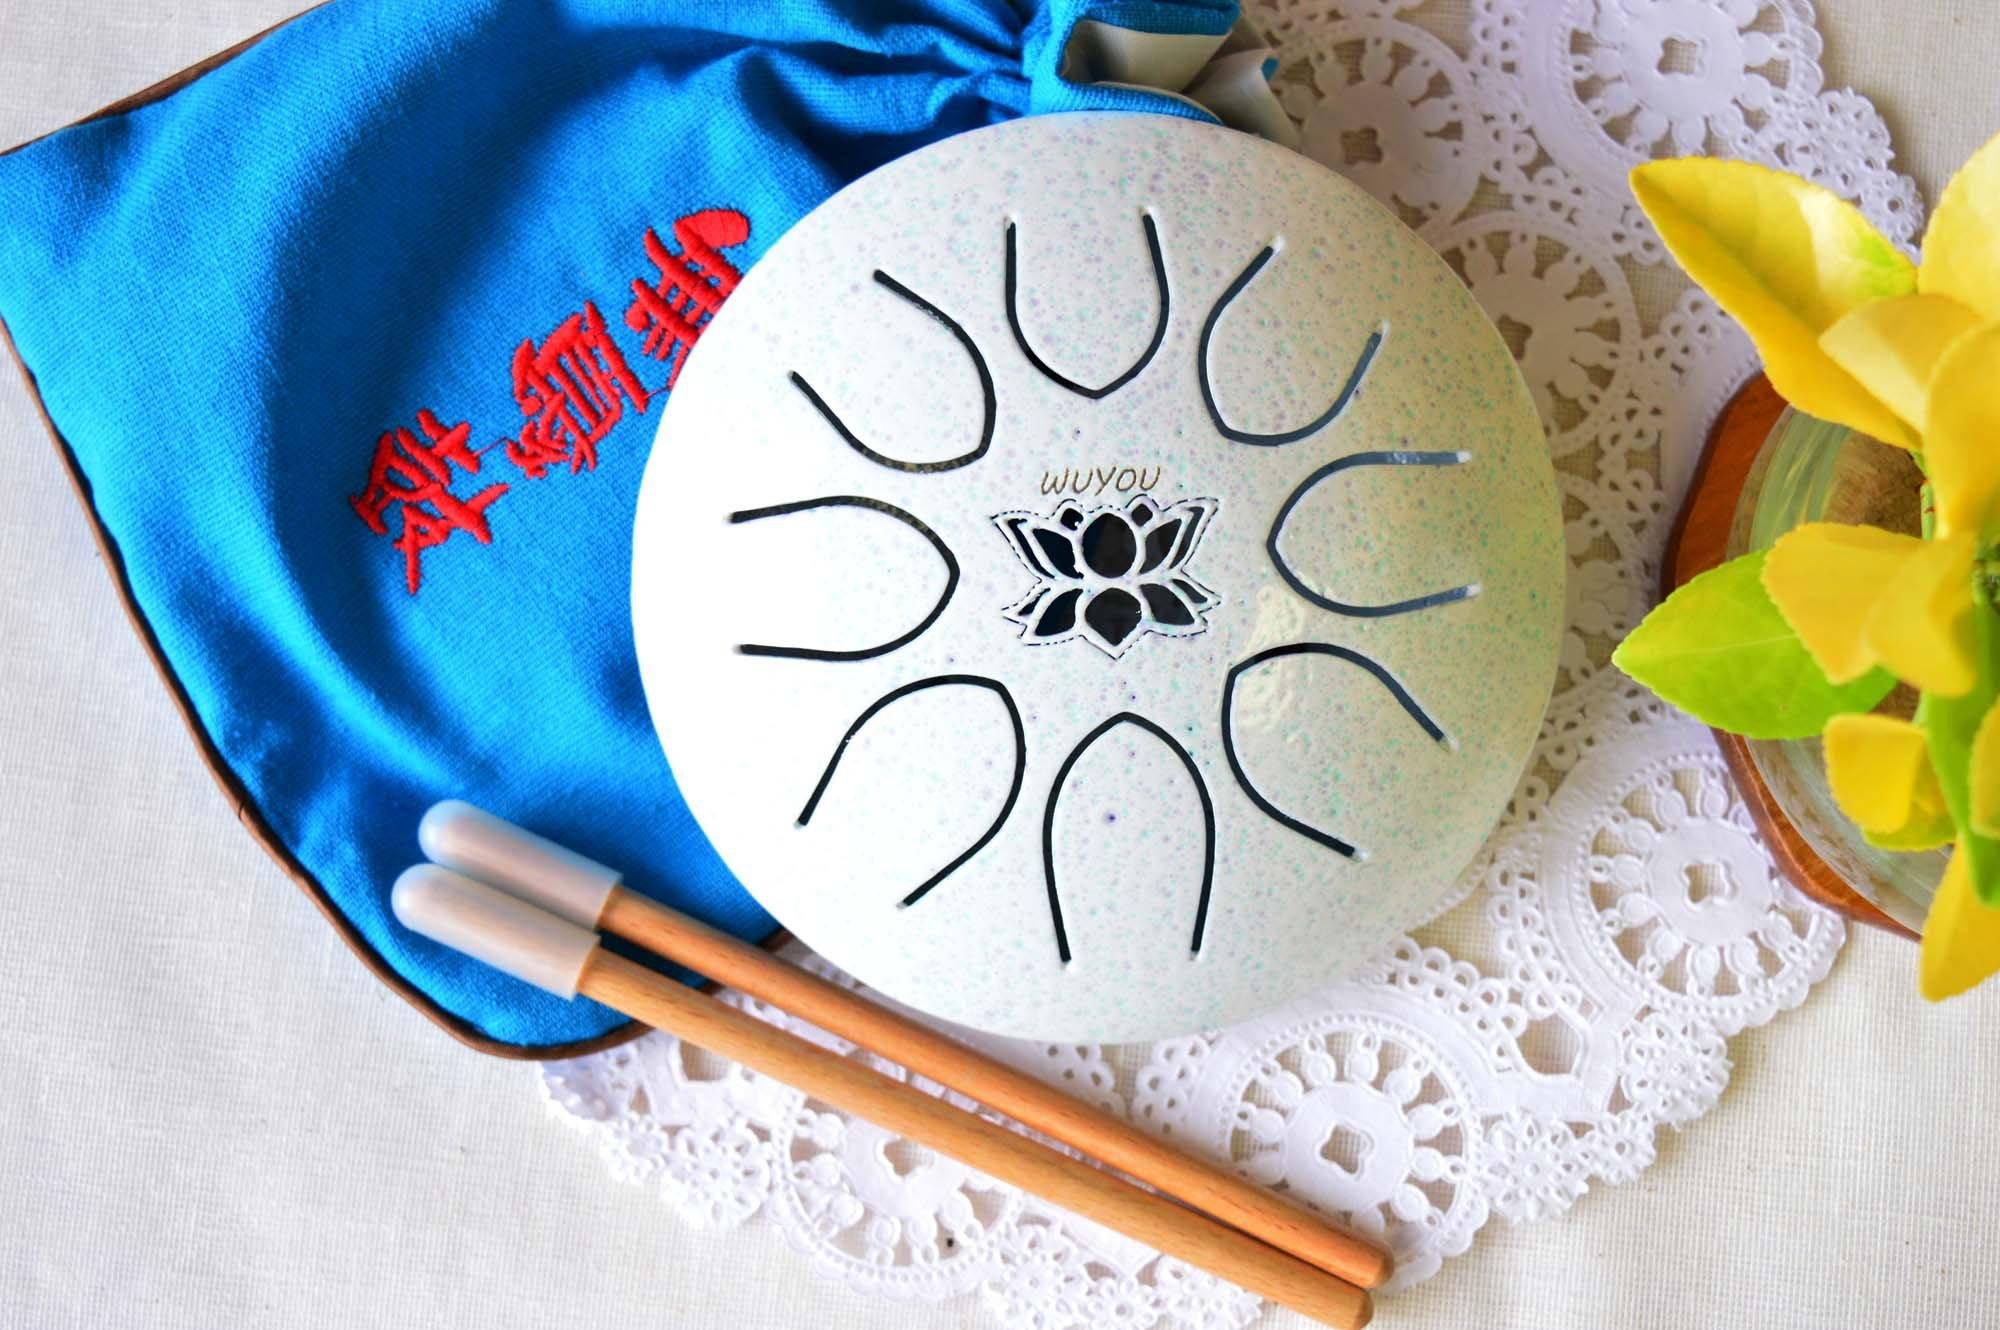 WuYou Hand-tune 5in Steel tongue Drum HandpanChakra Drum, Free bag and mallets, White